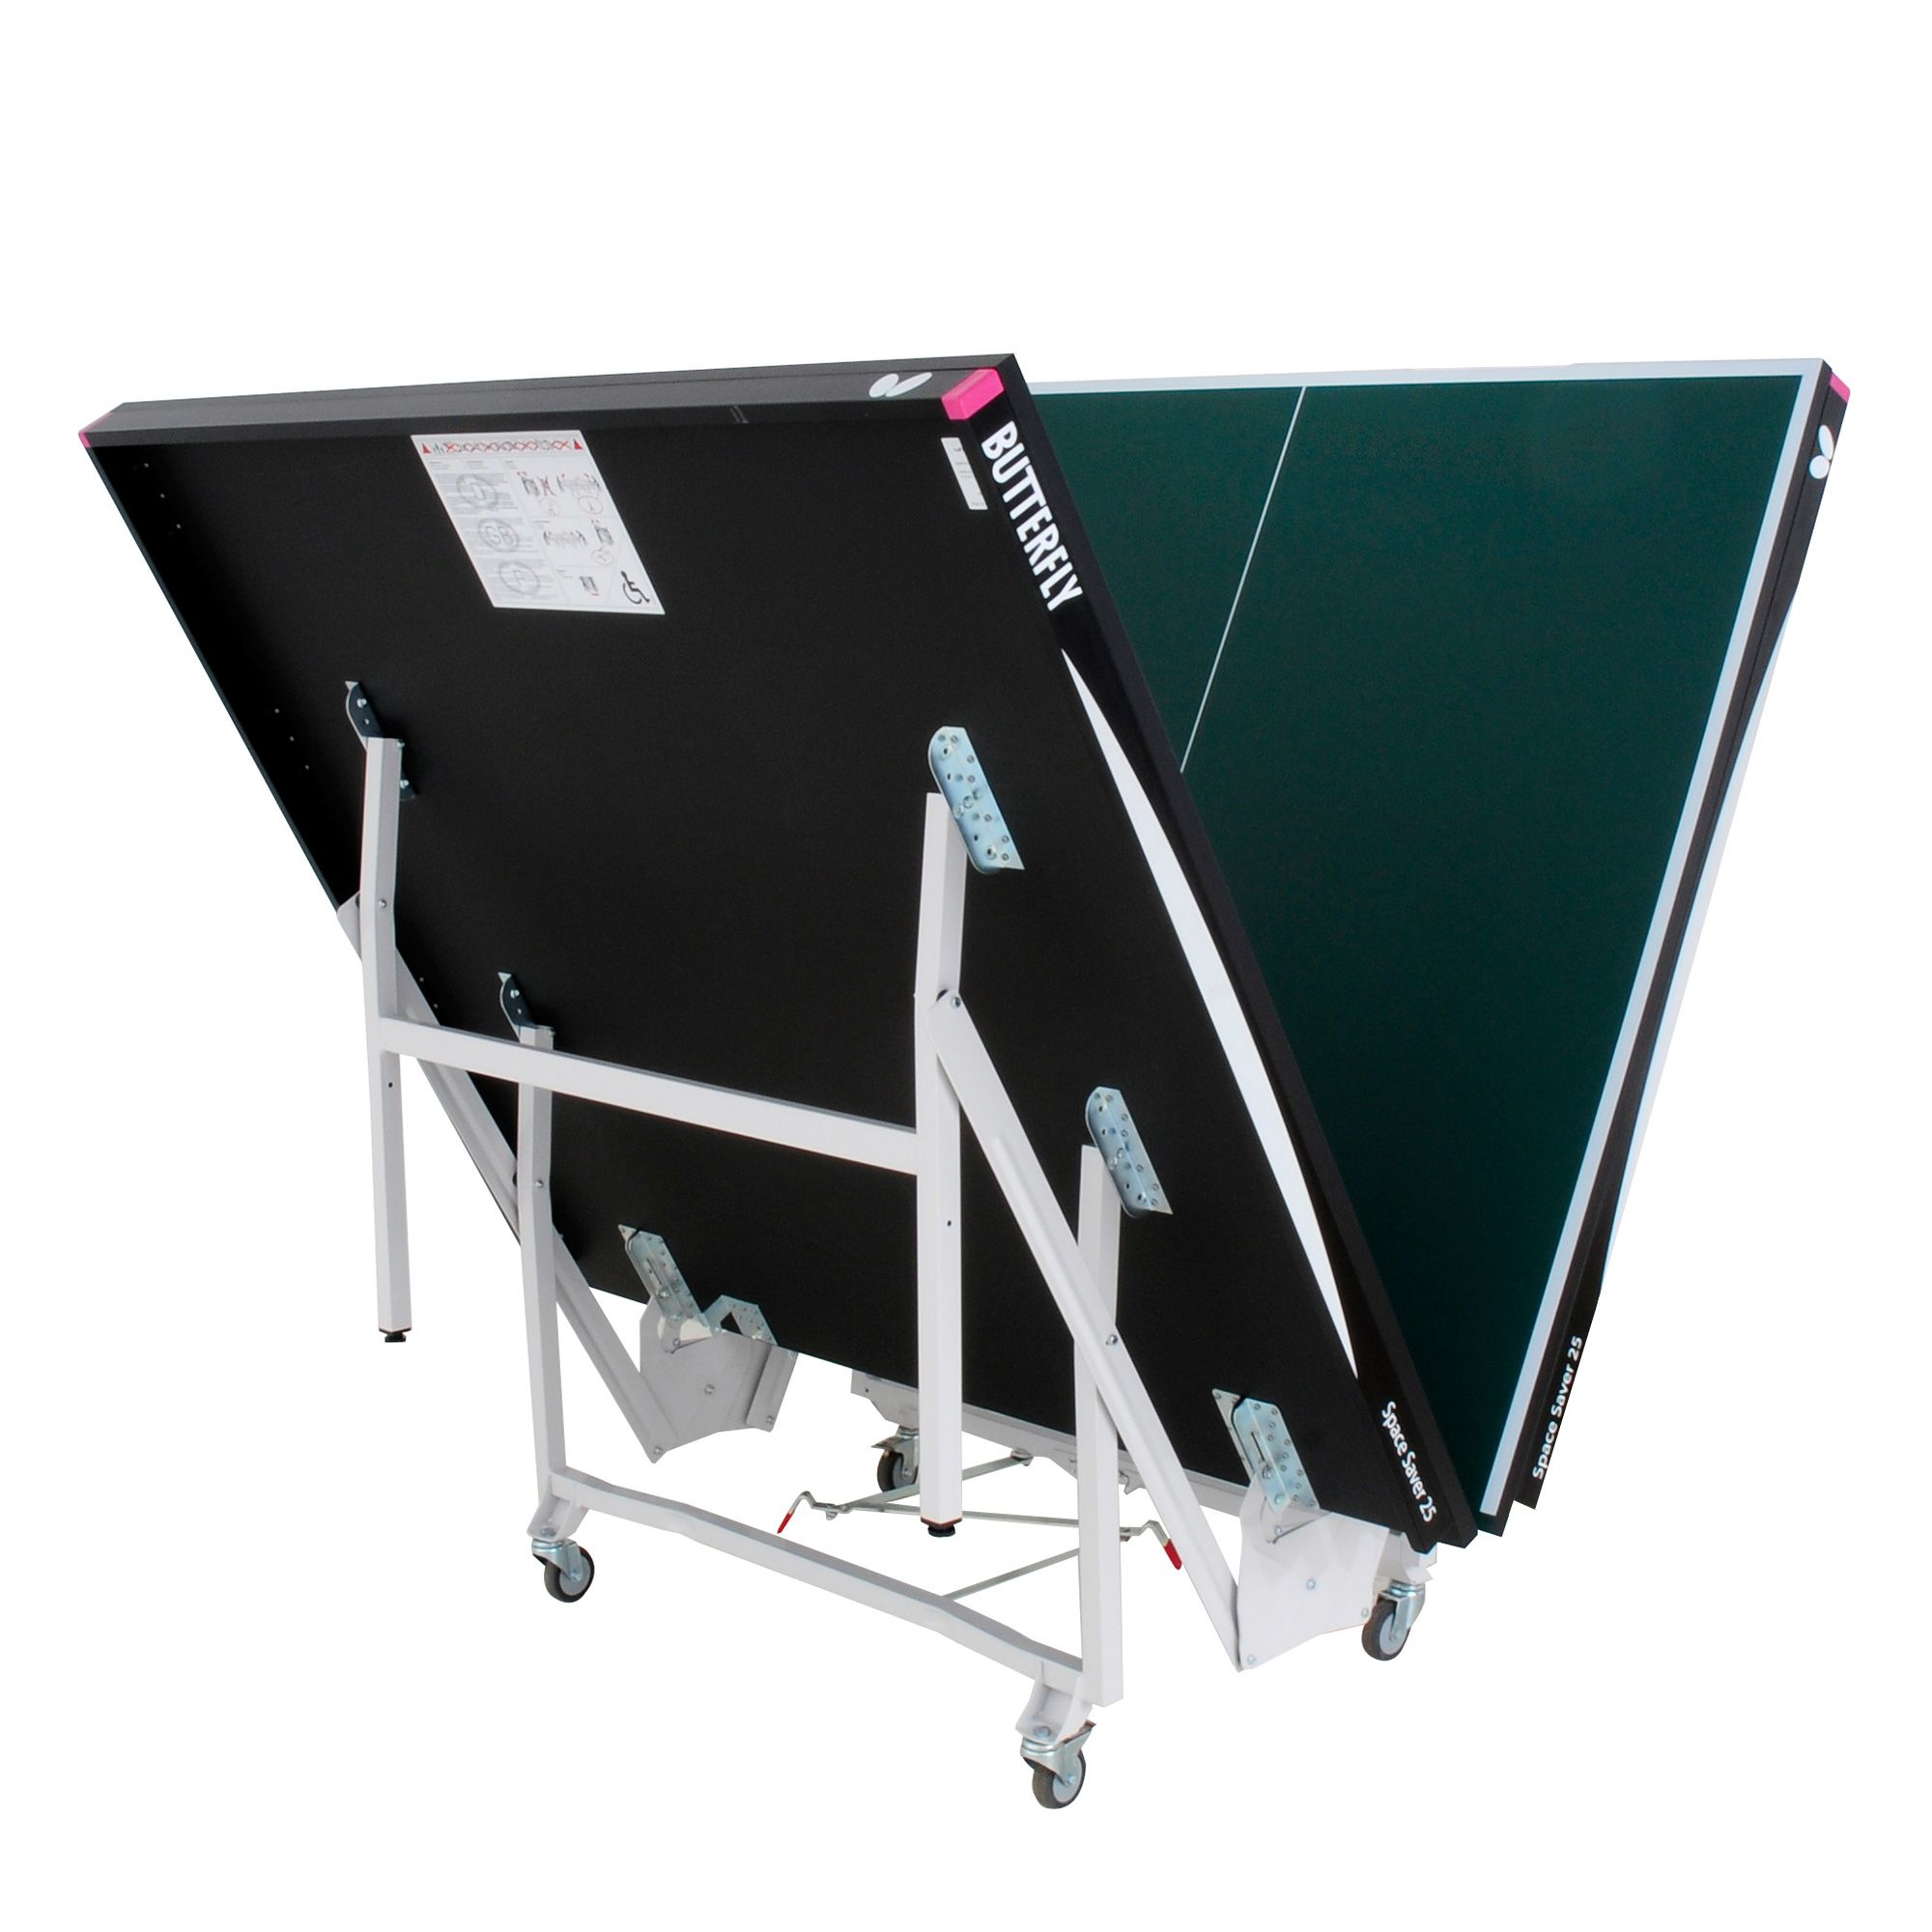 Butterfly space saver 22 rollaway indoor table tennis table - Folding table tennis tables for sale ...